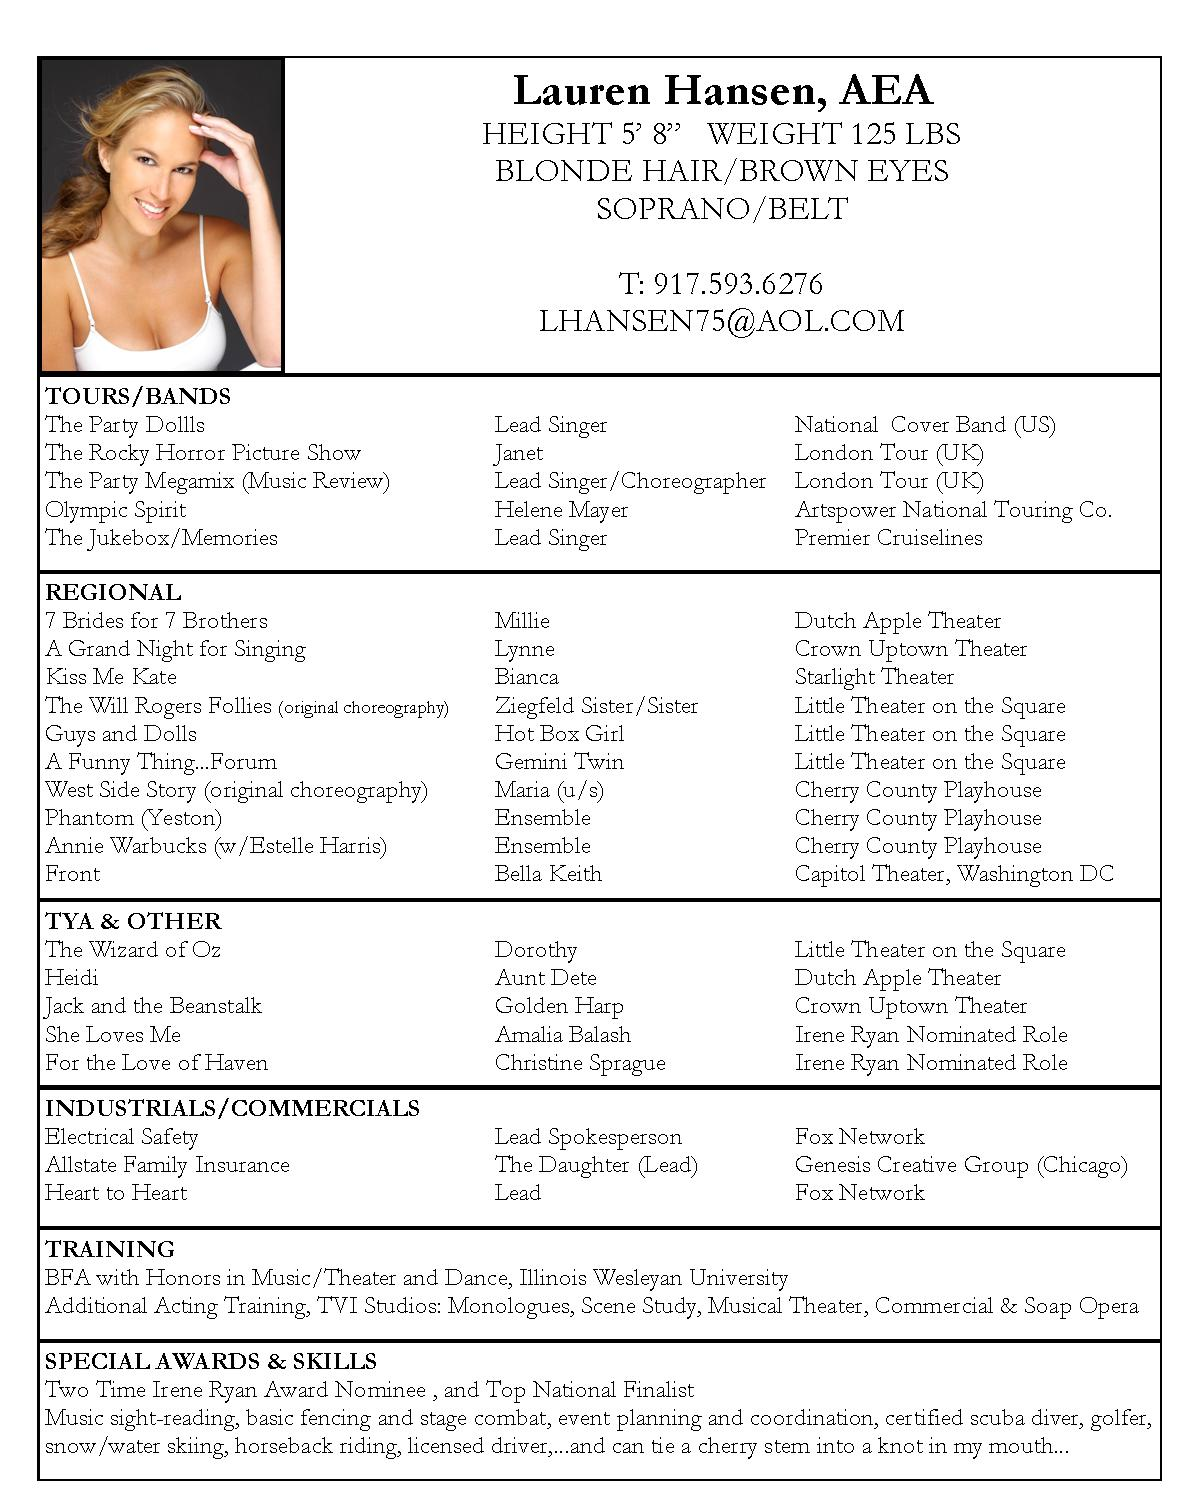 Opposenewapstandardsus  Marvelous Resume For Actors Resume For Acting Actors Acting Resume Template  With Luxury Acting Cv  Beginner Acting Resume Example For Inexperienced  With Breathtaking Ceo Resume Examples Also Customer Service Representative Job Description Resume In Addition How Do A Resume Look And Resume Templates Online As Well As College Student Resume Template Microsoft Word Additionally Event Management Resume From Kelseymarieco With Opposenewapstandardsus  Luxury Resume For Actors Resume For Acting Actors Acting Resume Template  With Breathtaking Acting Cv  Beginner Acting Resume Example For Inexperienced  And Marvelous Ceo Resume Examples Also Customer Service Representative Job Description Resume In Addition How Do A Resume Look From Kelseymarieco